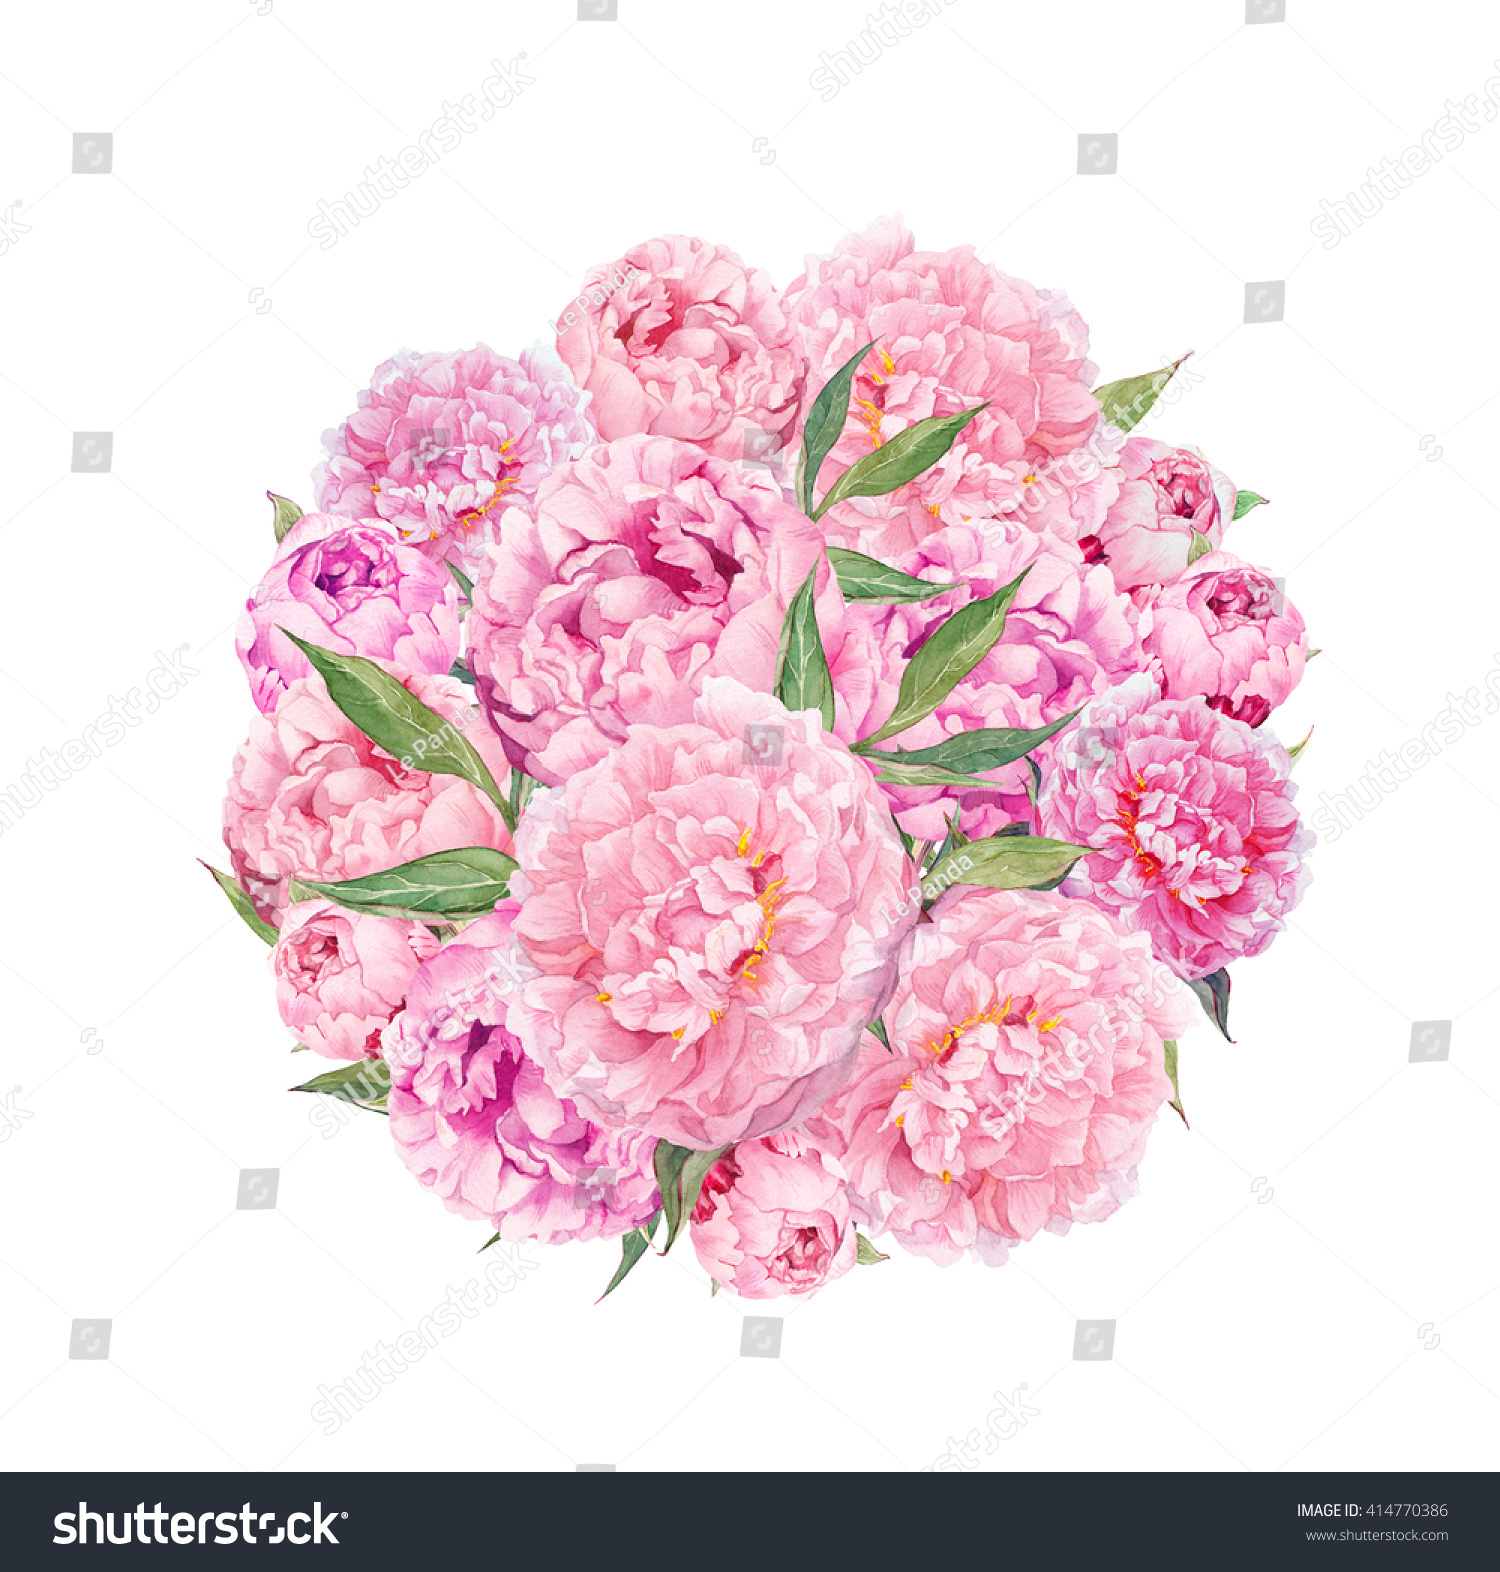 Floral circle background pink peony flowers stock illustration floral circle background with pink peony flowers watercolor dhlflorist Images